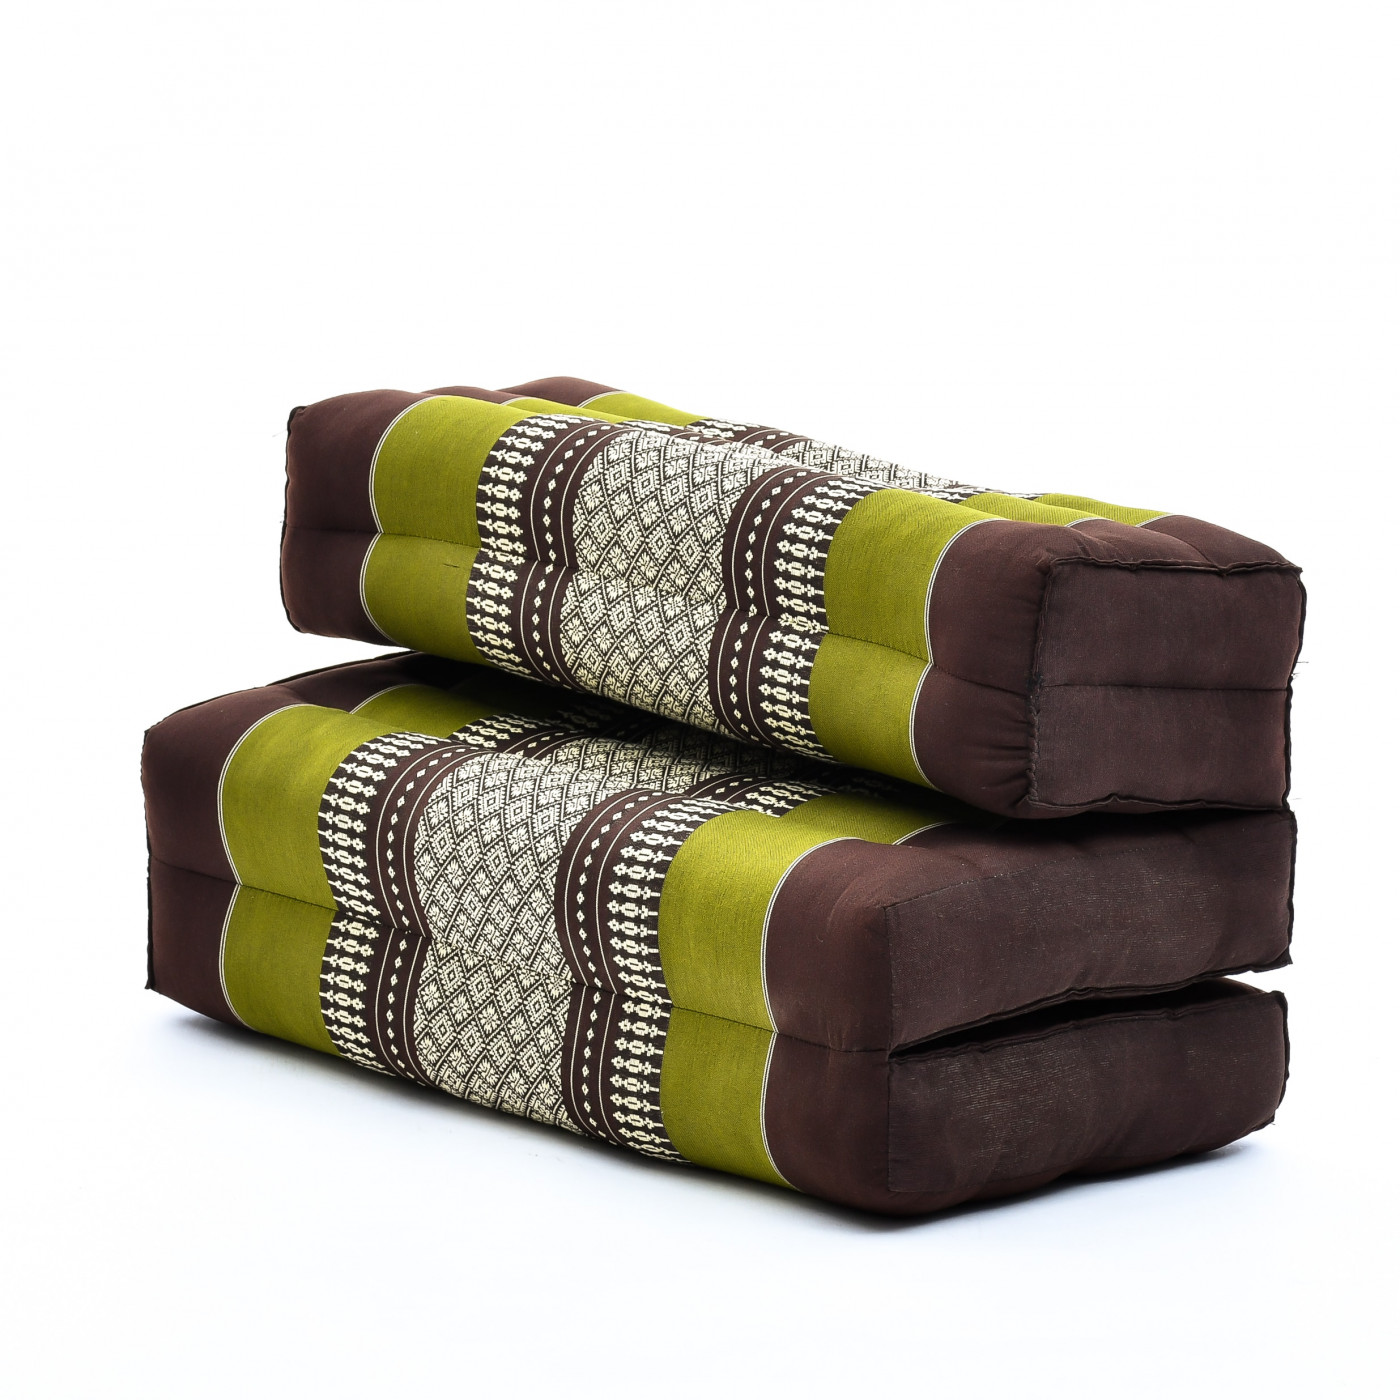 Kapok Leewadee Foldable Meditation Floor Seat 2 in 1 Set Meditation Pillow and Cushion Underlay in One Eco-Friendly Organic and Natural